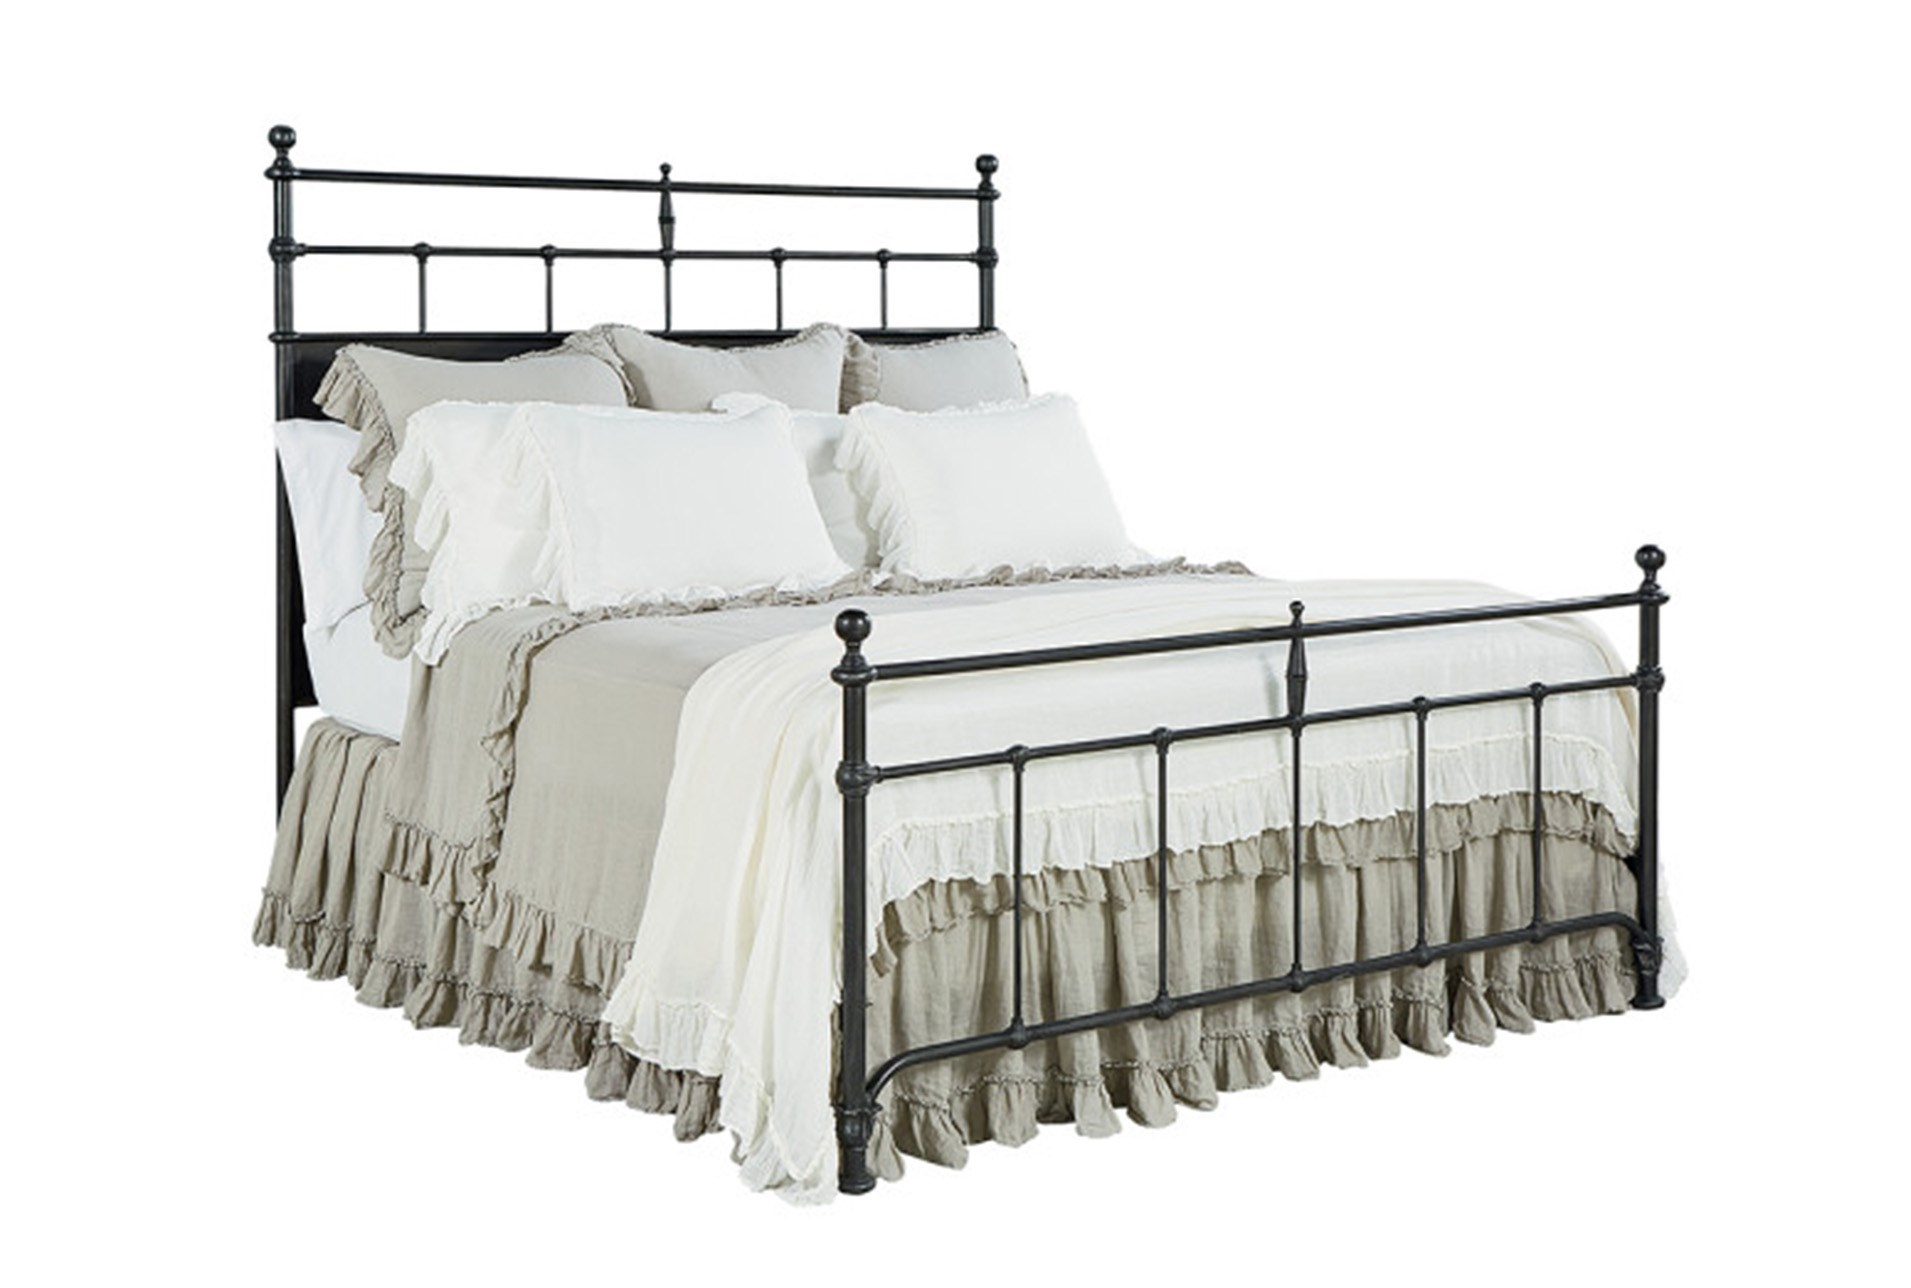 Magnolia Home Trellis California King Panel Bed By Joanna Gaines Qty 1 Has Been Successfully Added To Your Cart